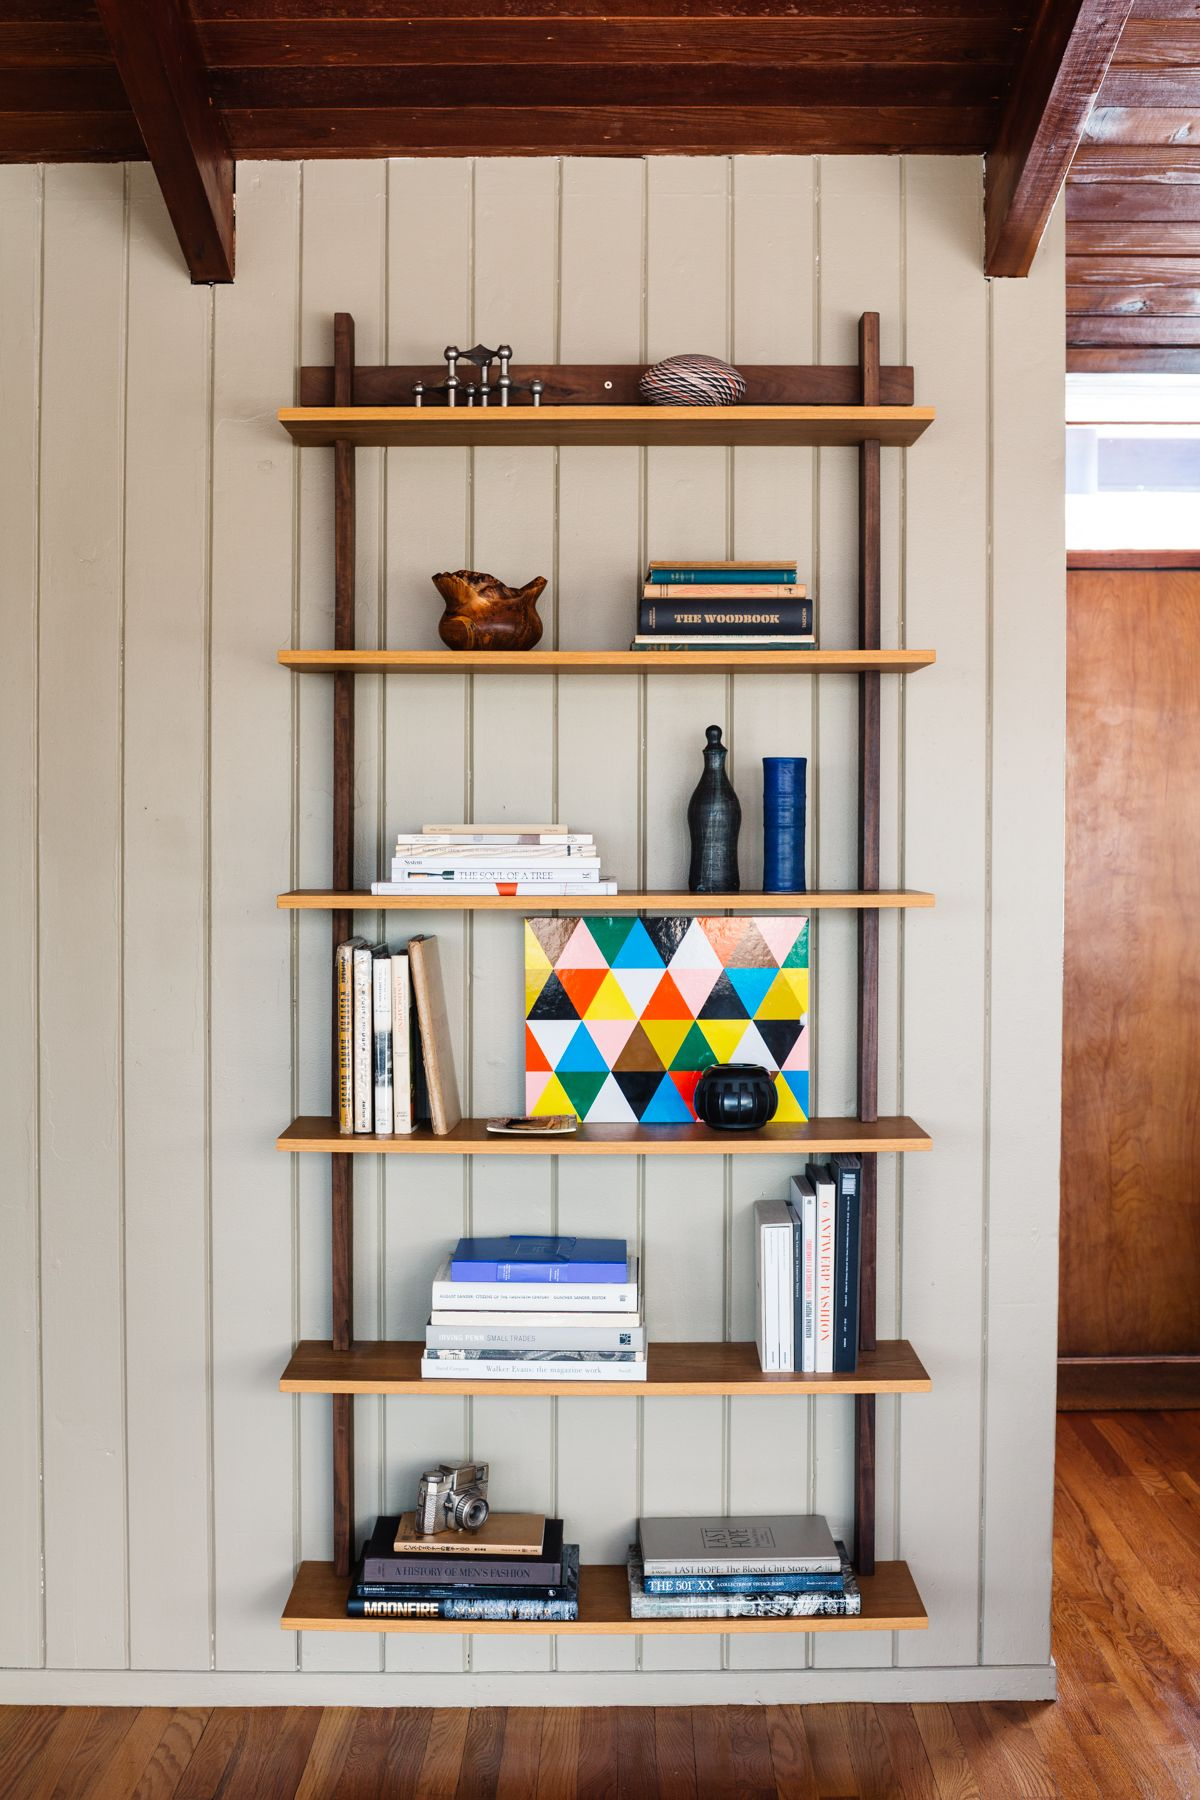 Wall Hung Shelves At The Wood House Carla And Niall Maher S Midcentury Ranch An Ongoing Remodel Restoration Project In Westchester Ny Photographed By